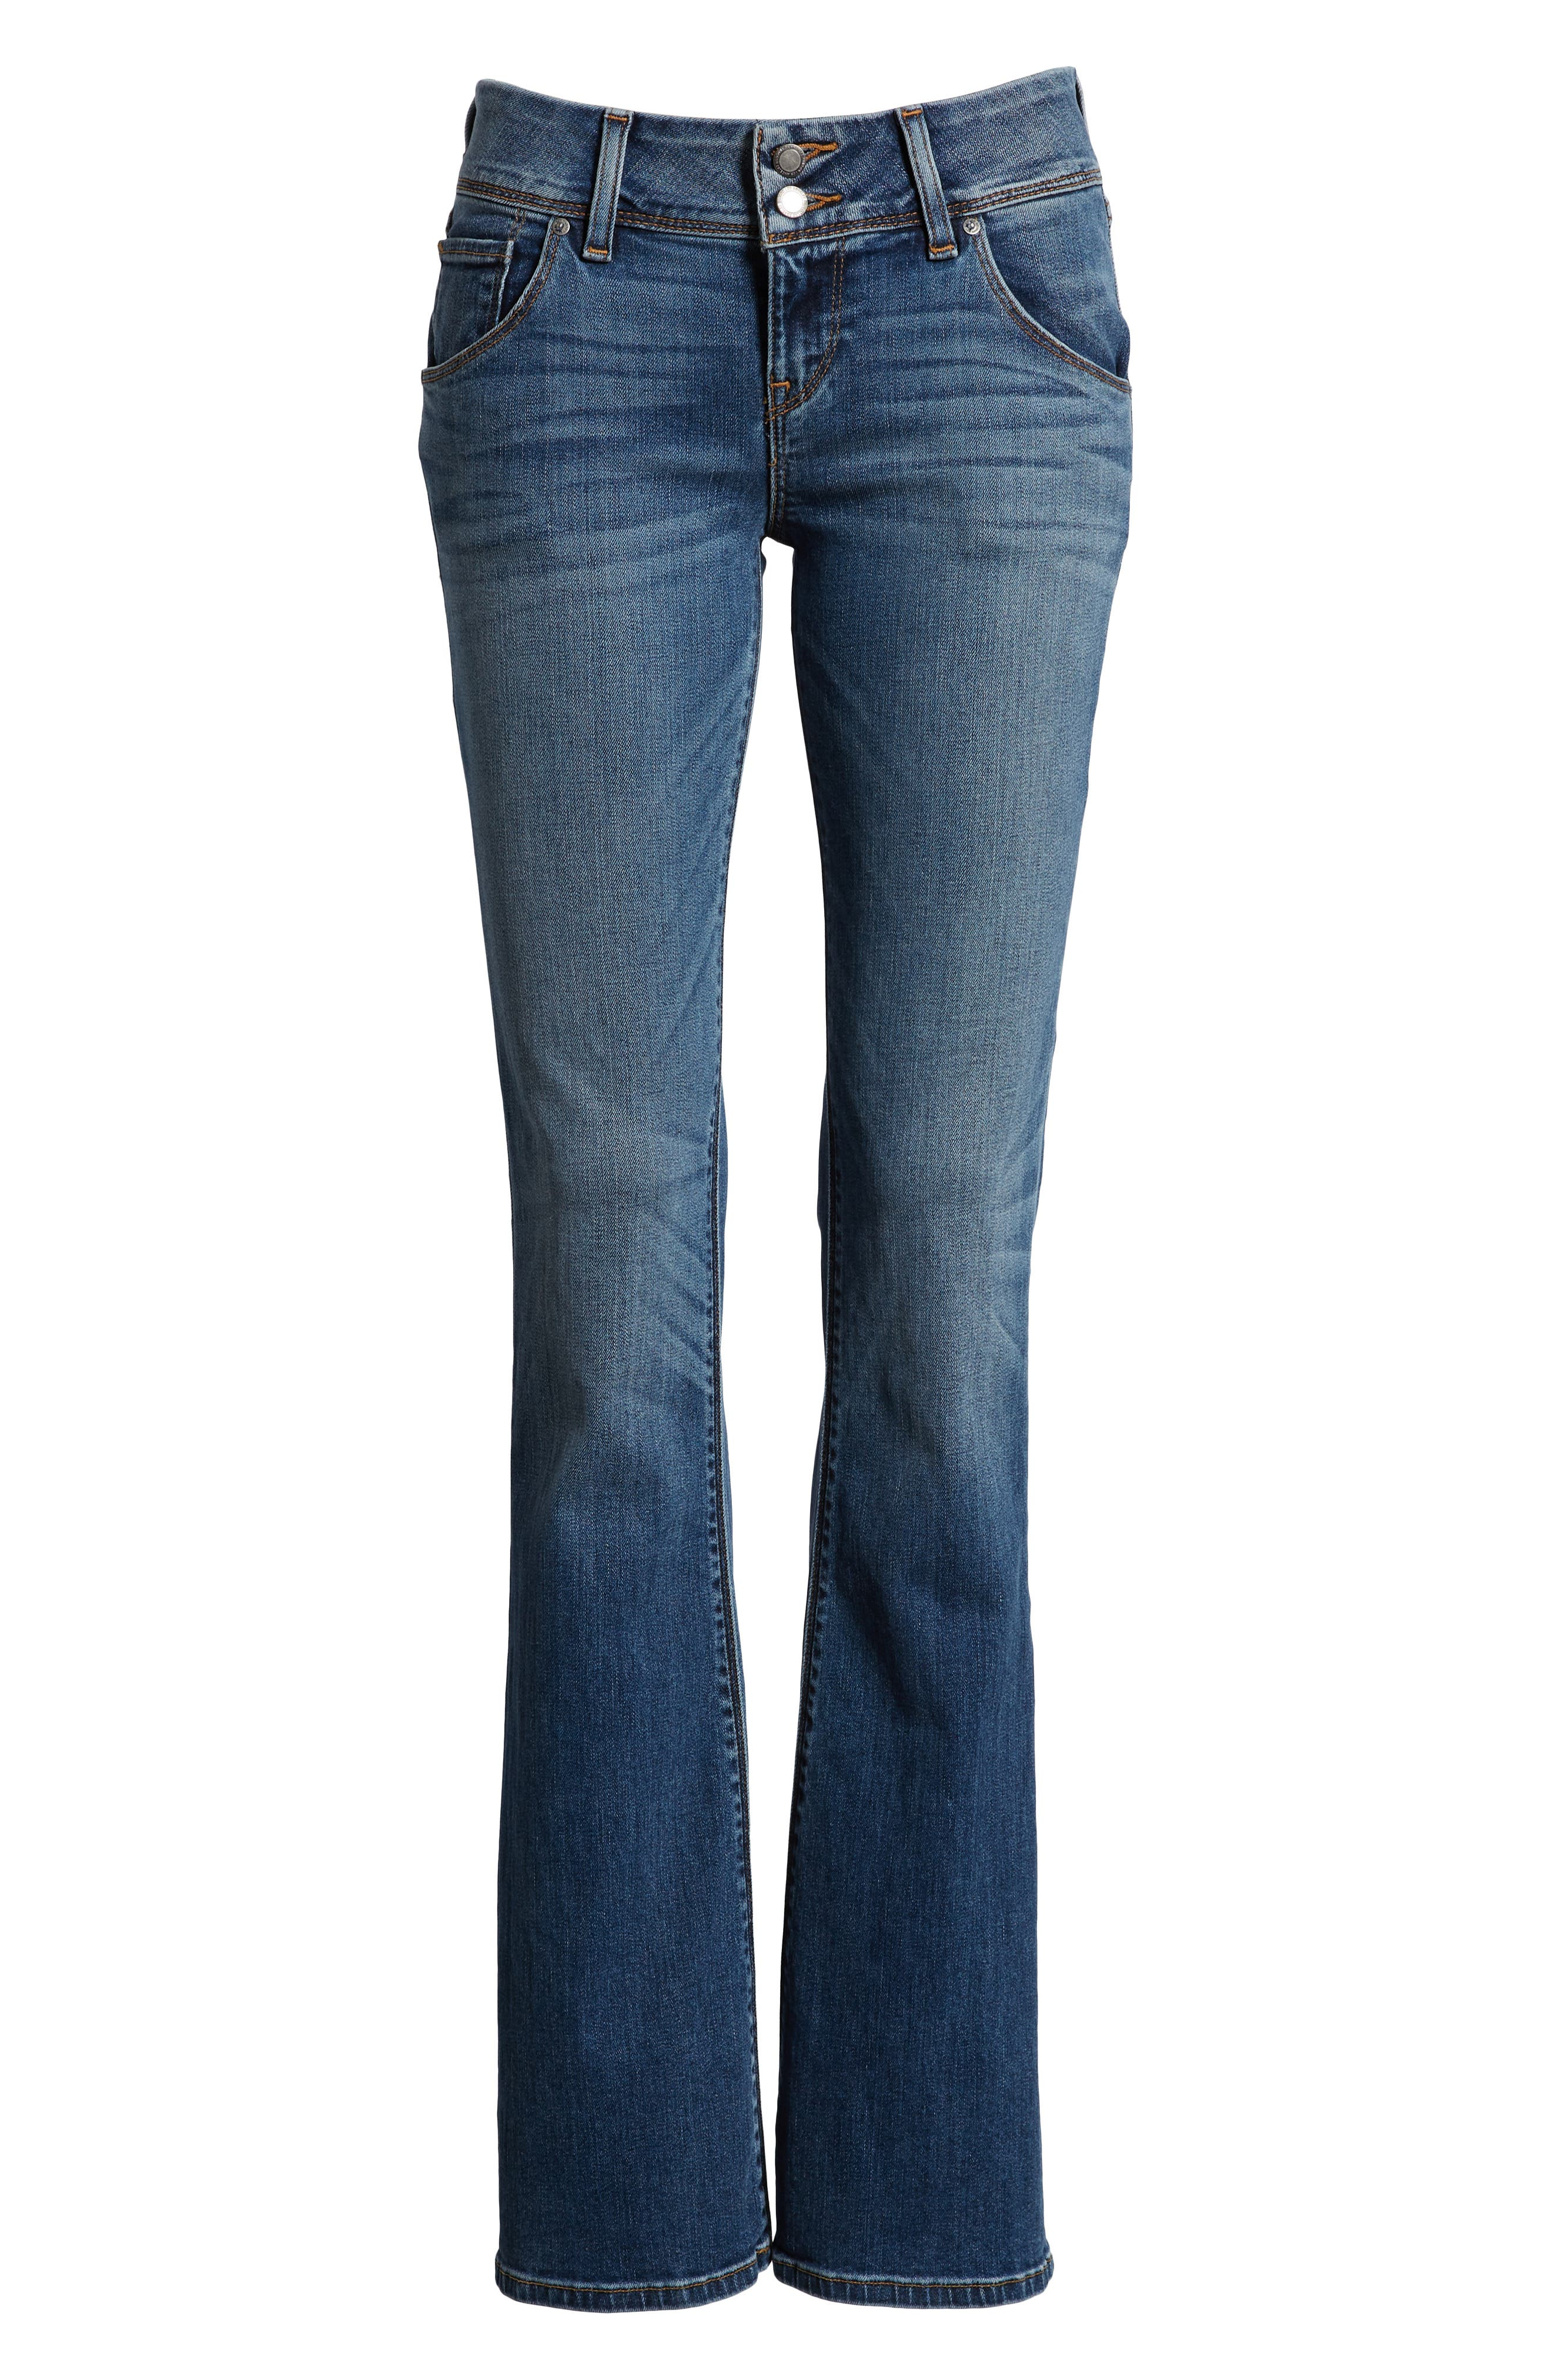 HUDSON JEANS, Signature Bootcut Jeans, Alternate thumbnail 7, color, OLYMPIC BLVD